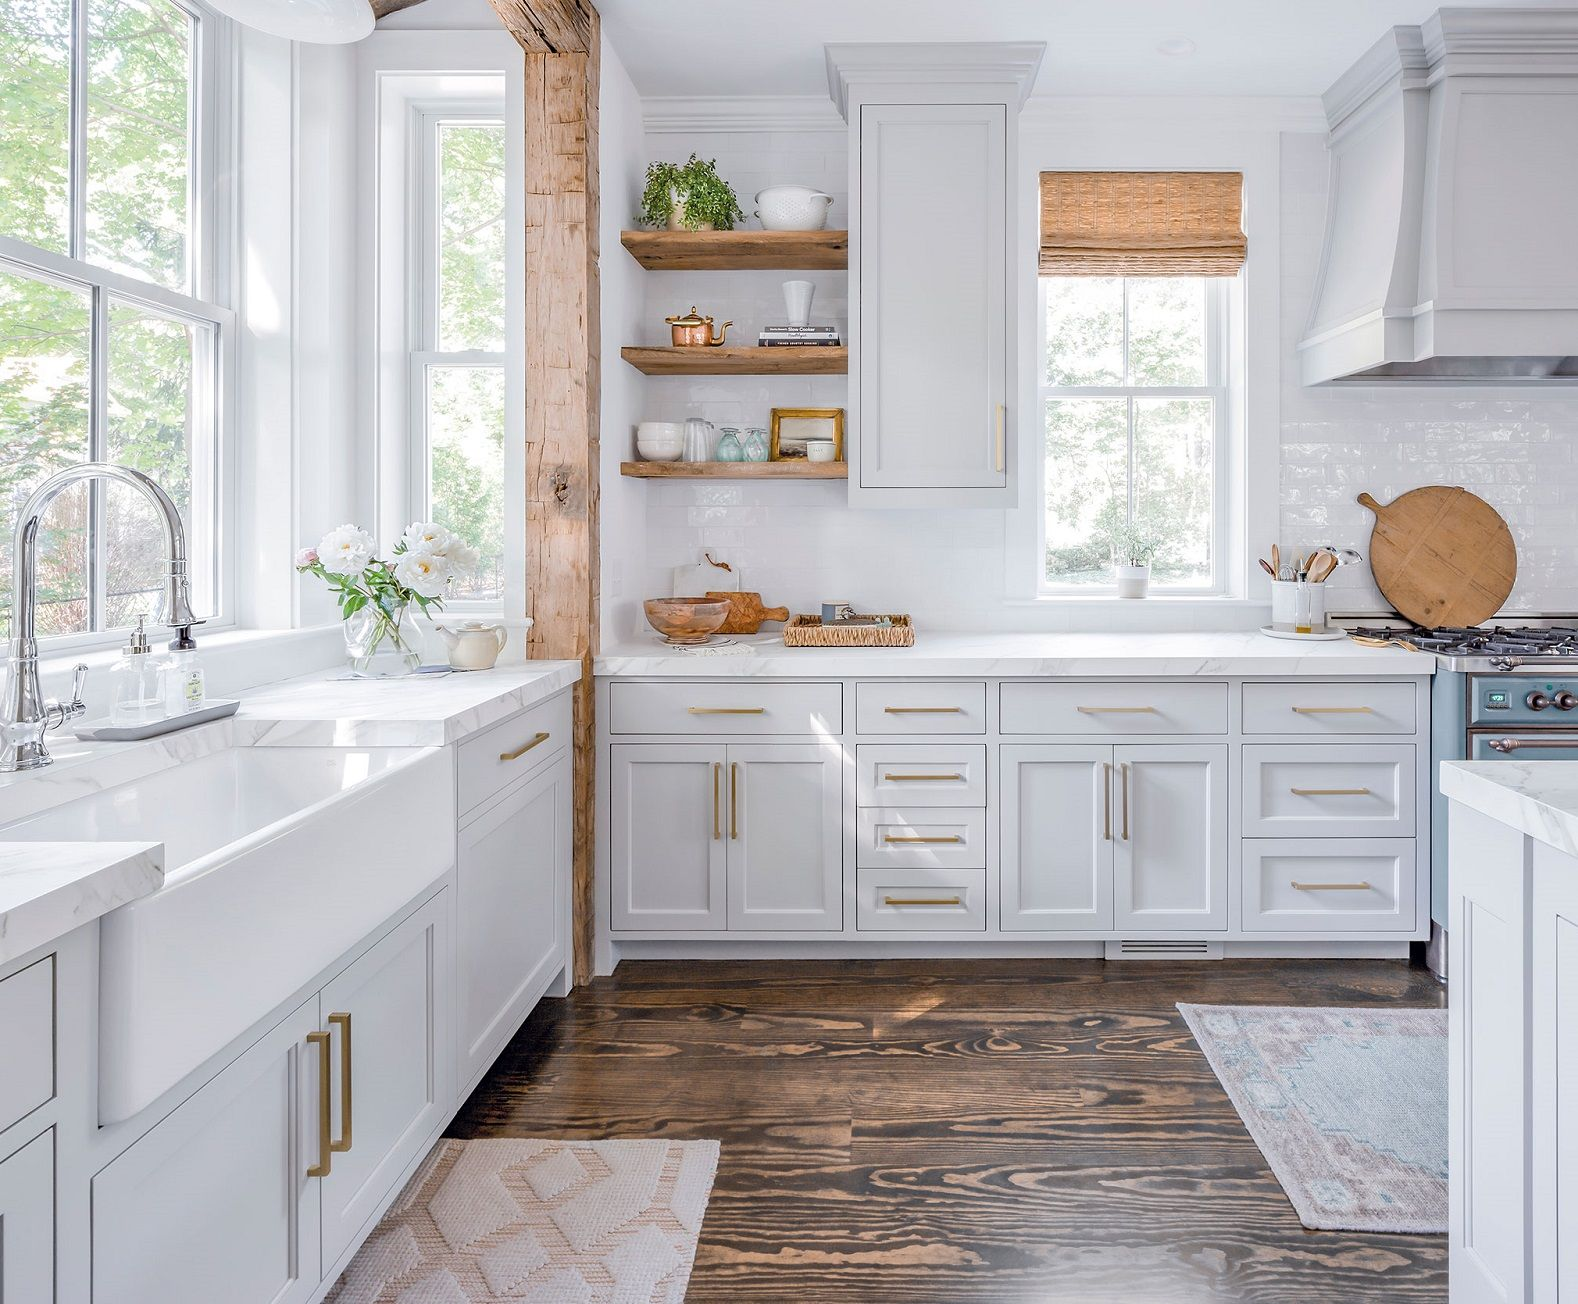 Best Coastal Kitchens Get Beach Themed Kitchens Decor Ideas 2020 Farmhouse Kitchen Design White Farmhouse Kitchens Kitchen Design Small